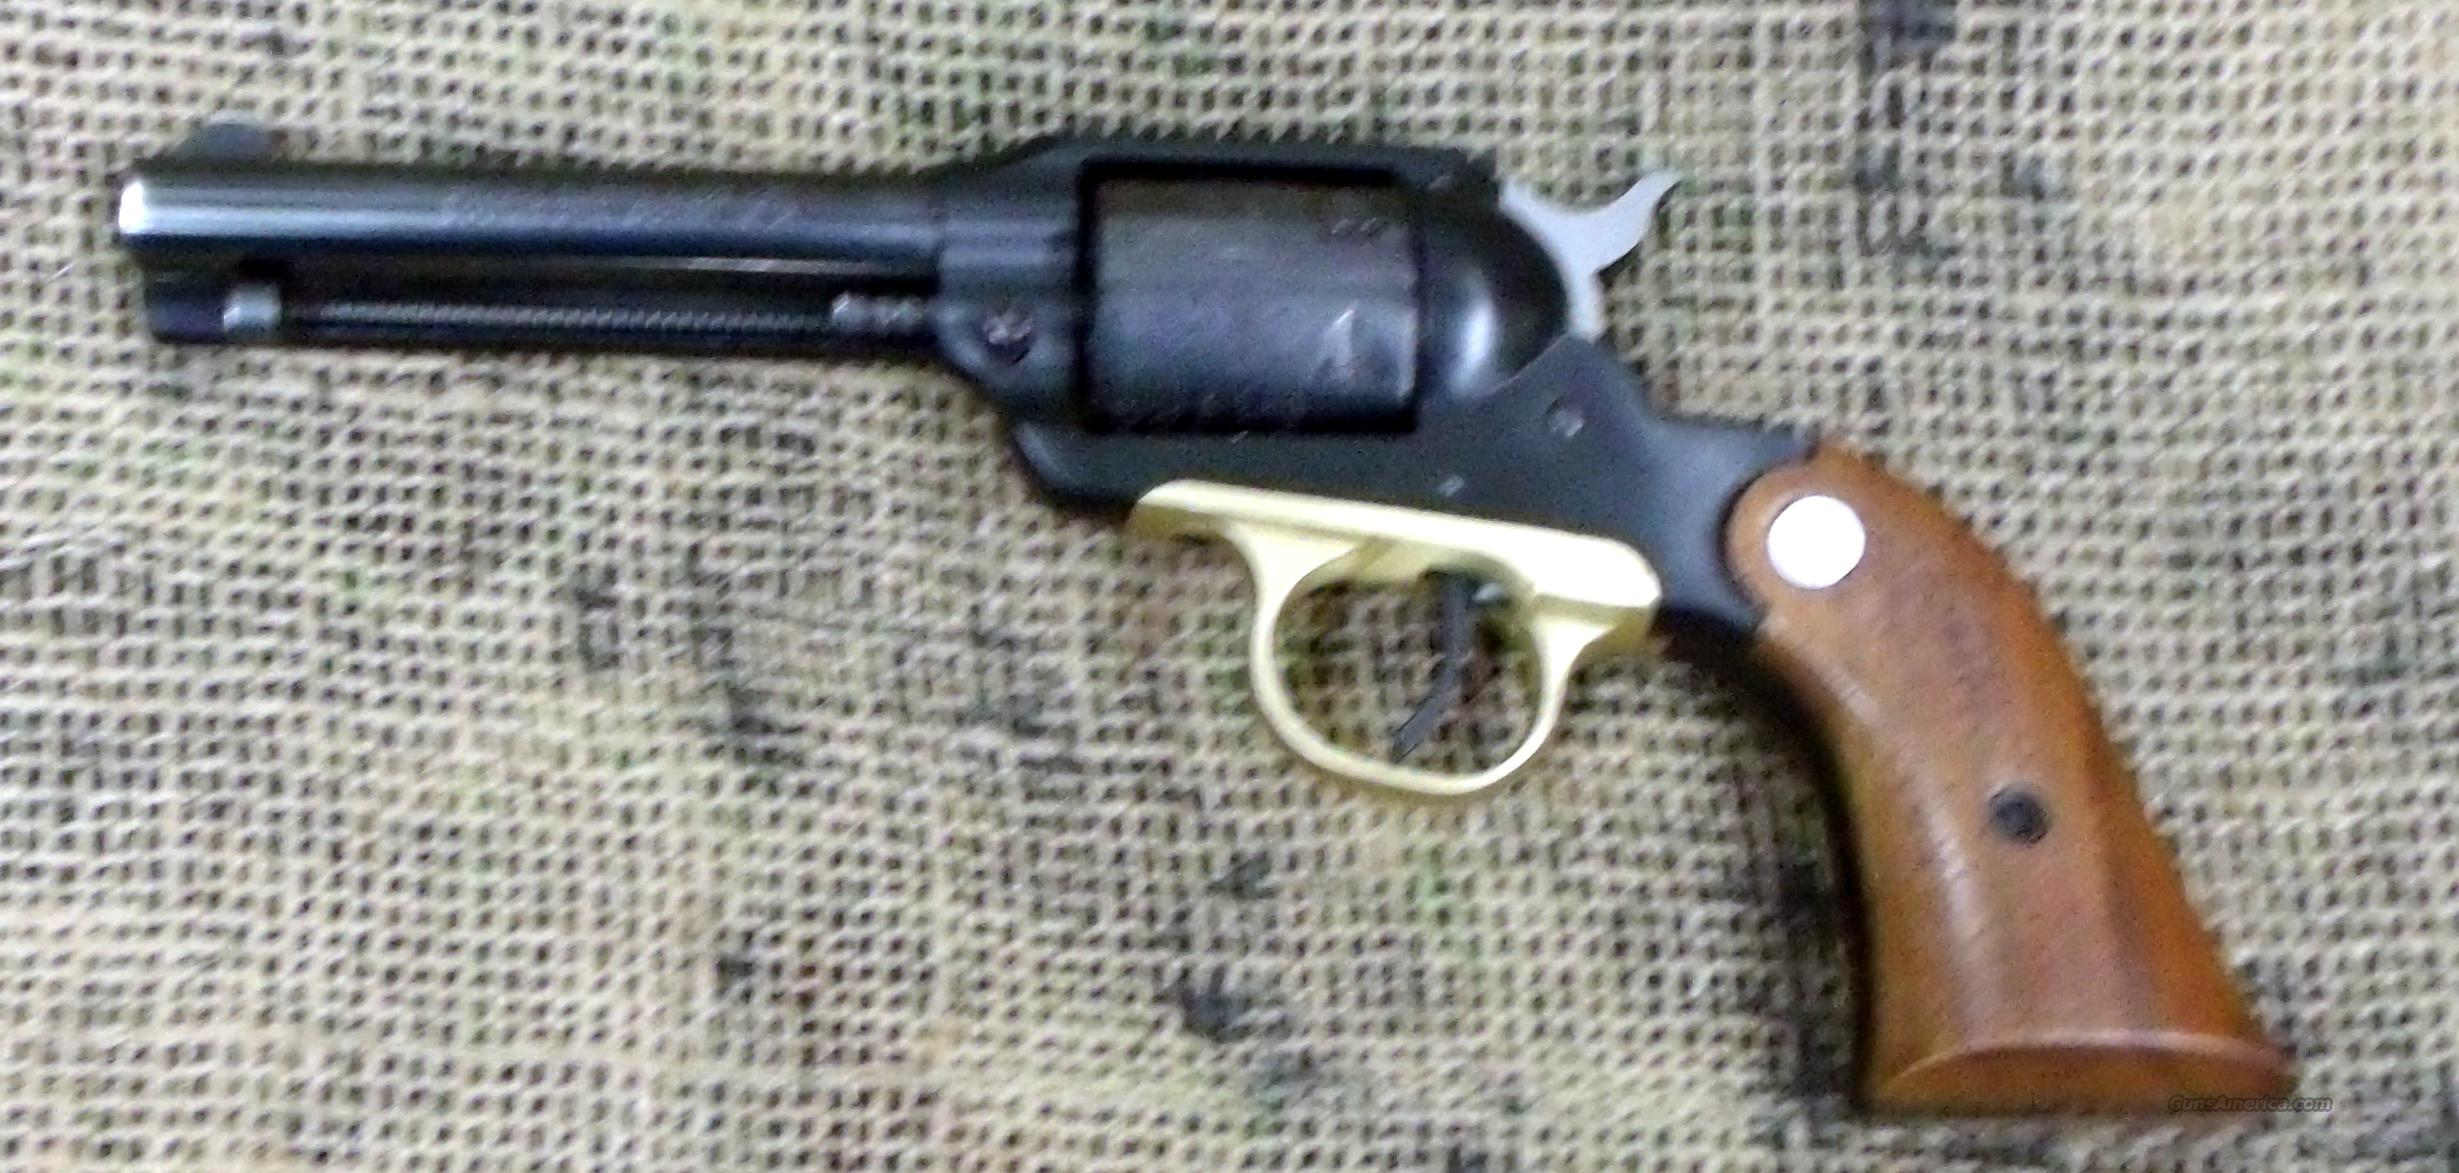 RUGER Bearcat (old model), 22 Cal.   Guns > Pistols > Ruger Single Action Revolvers > Single Six Type